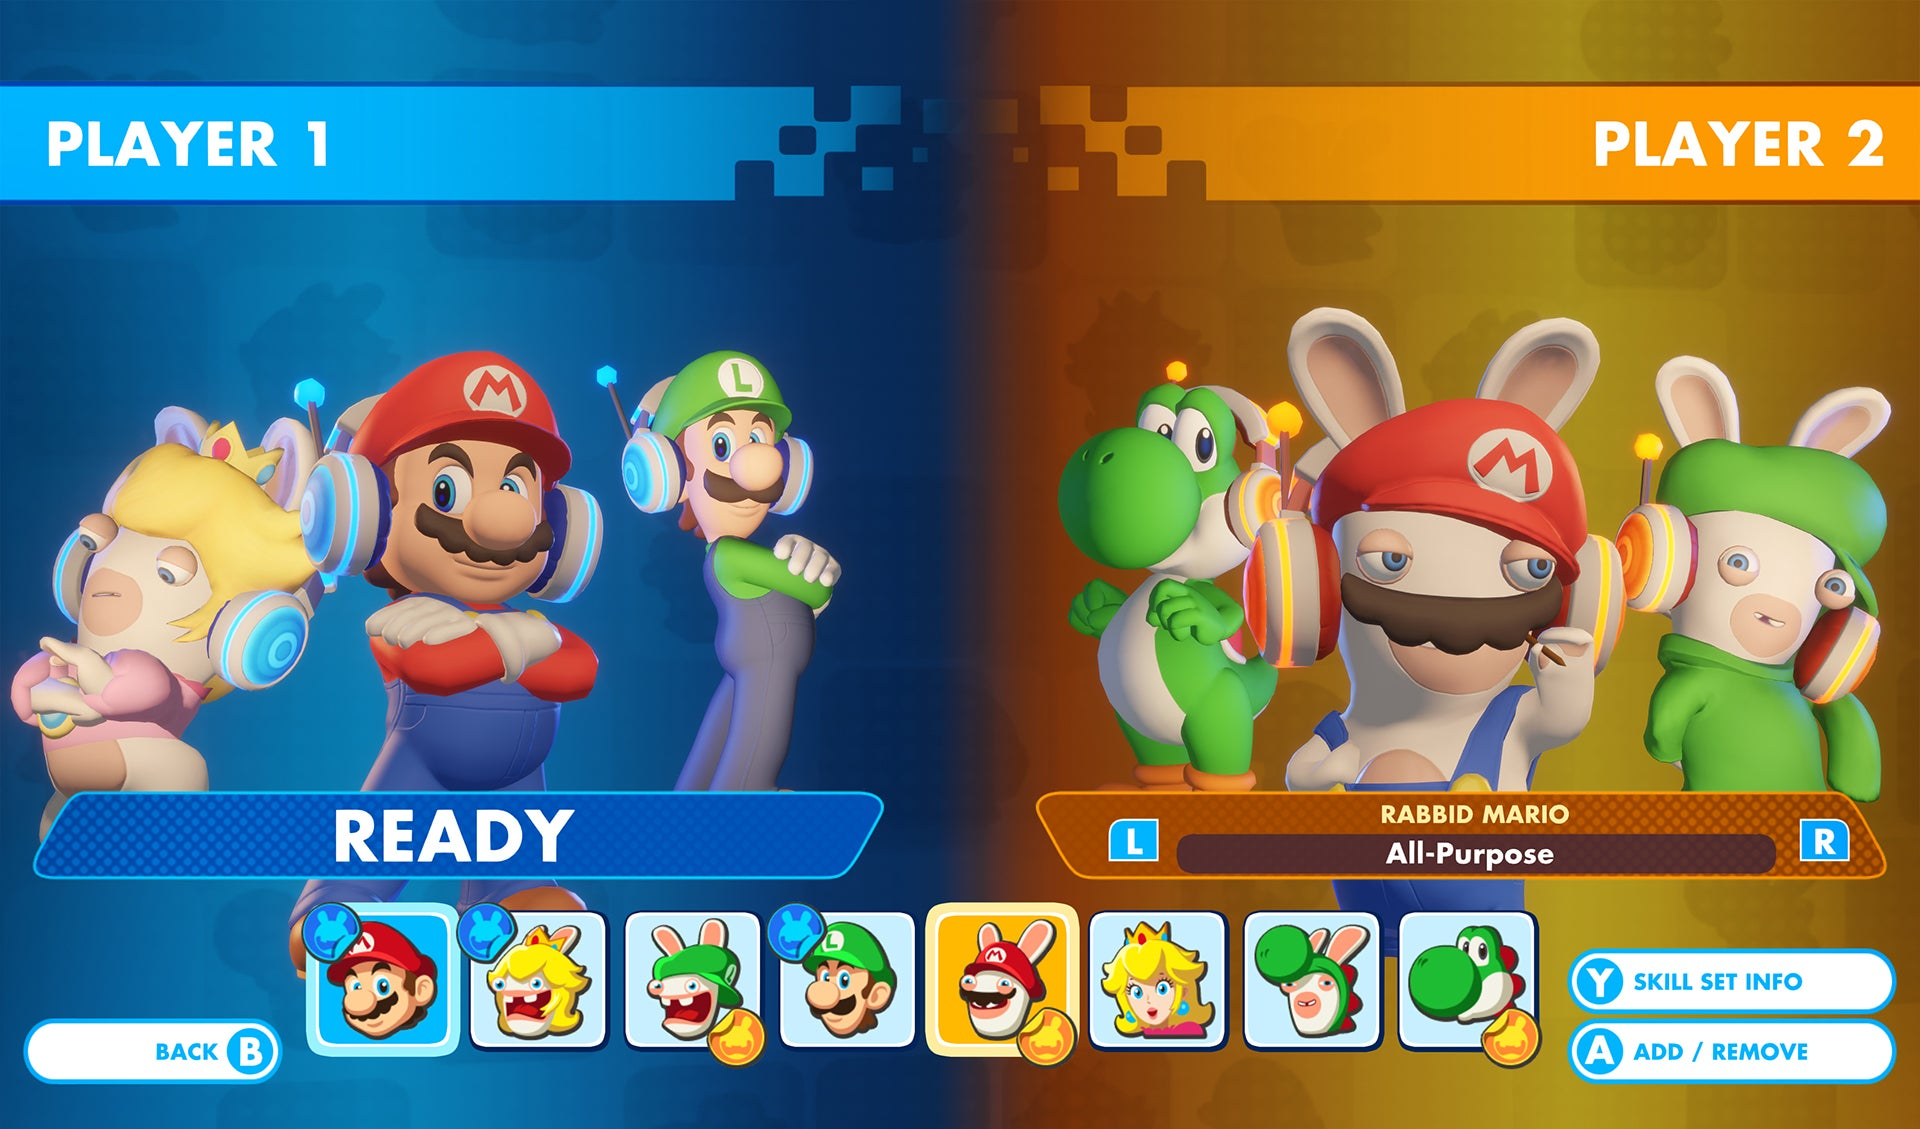 Mario + Rabbids Kingdom Battle gets a new free versus mode